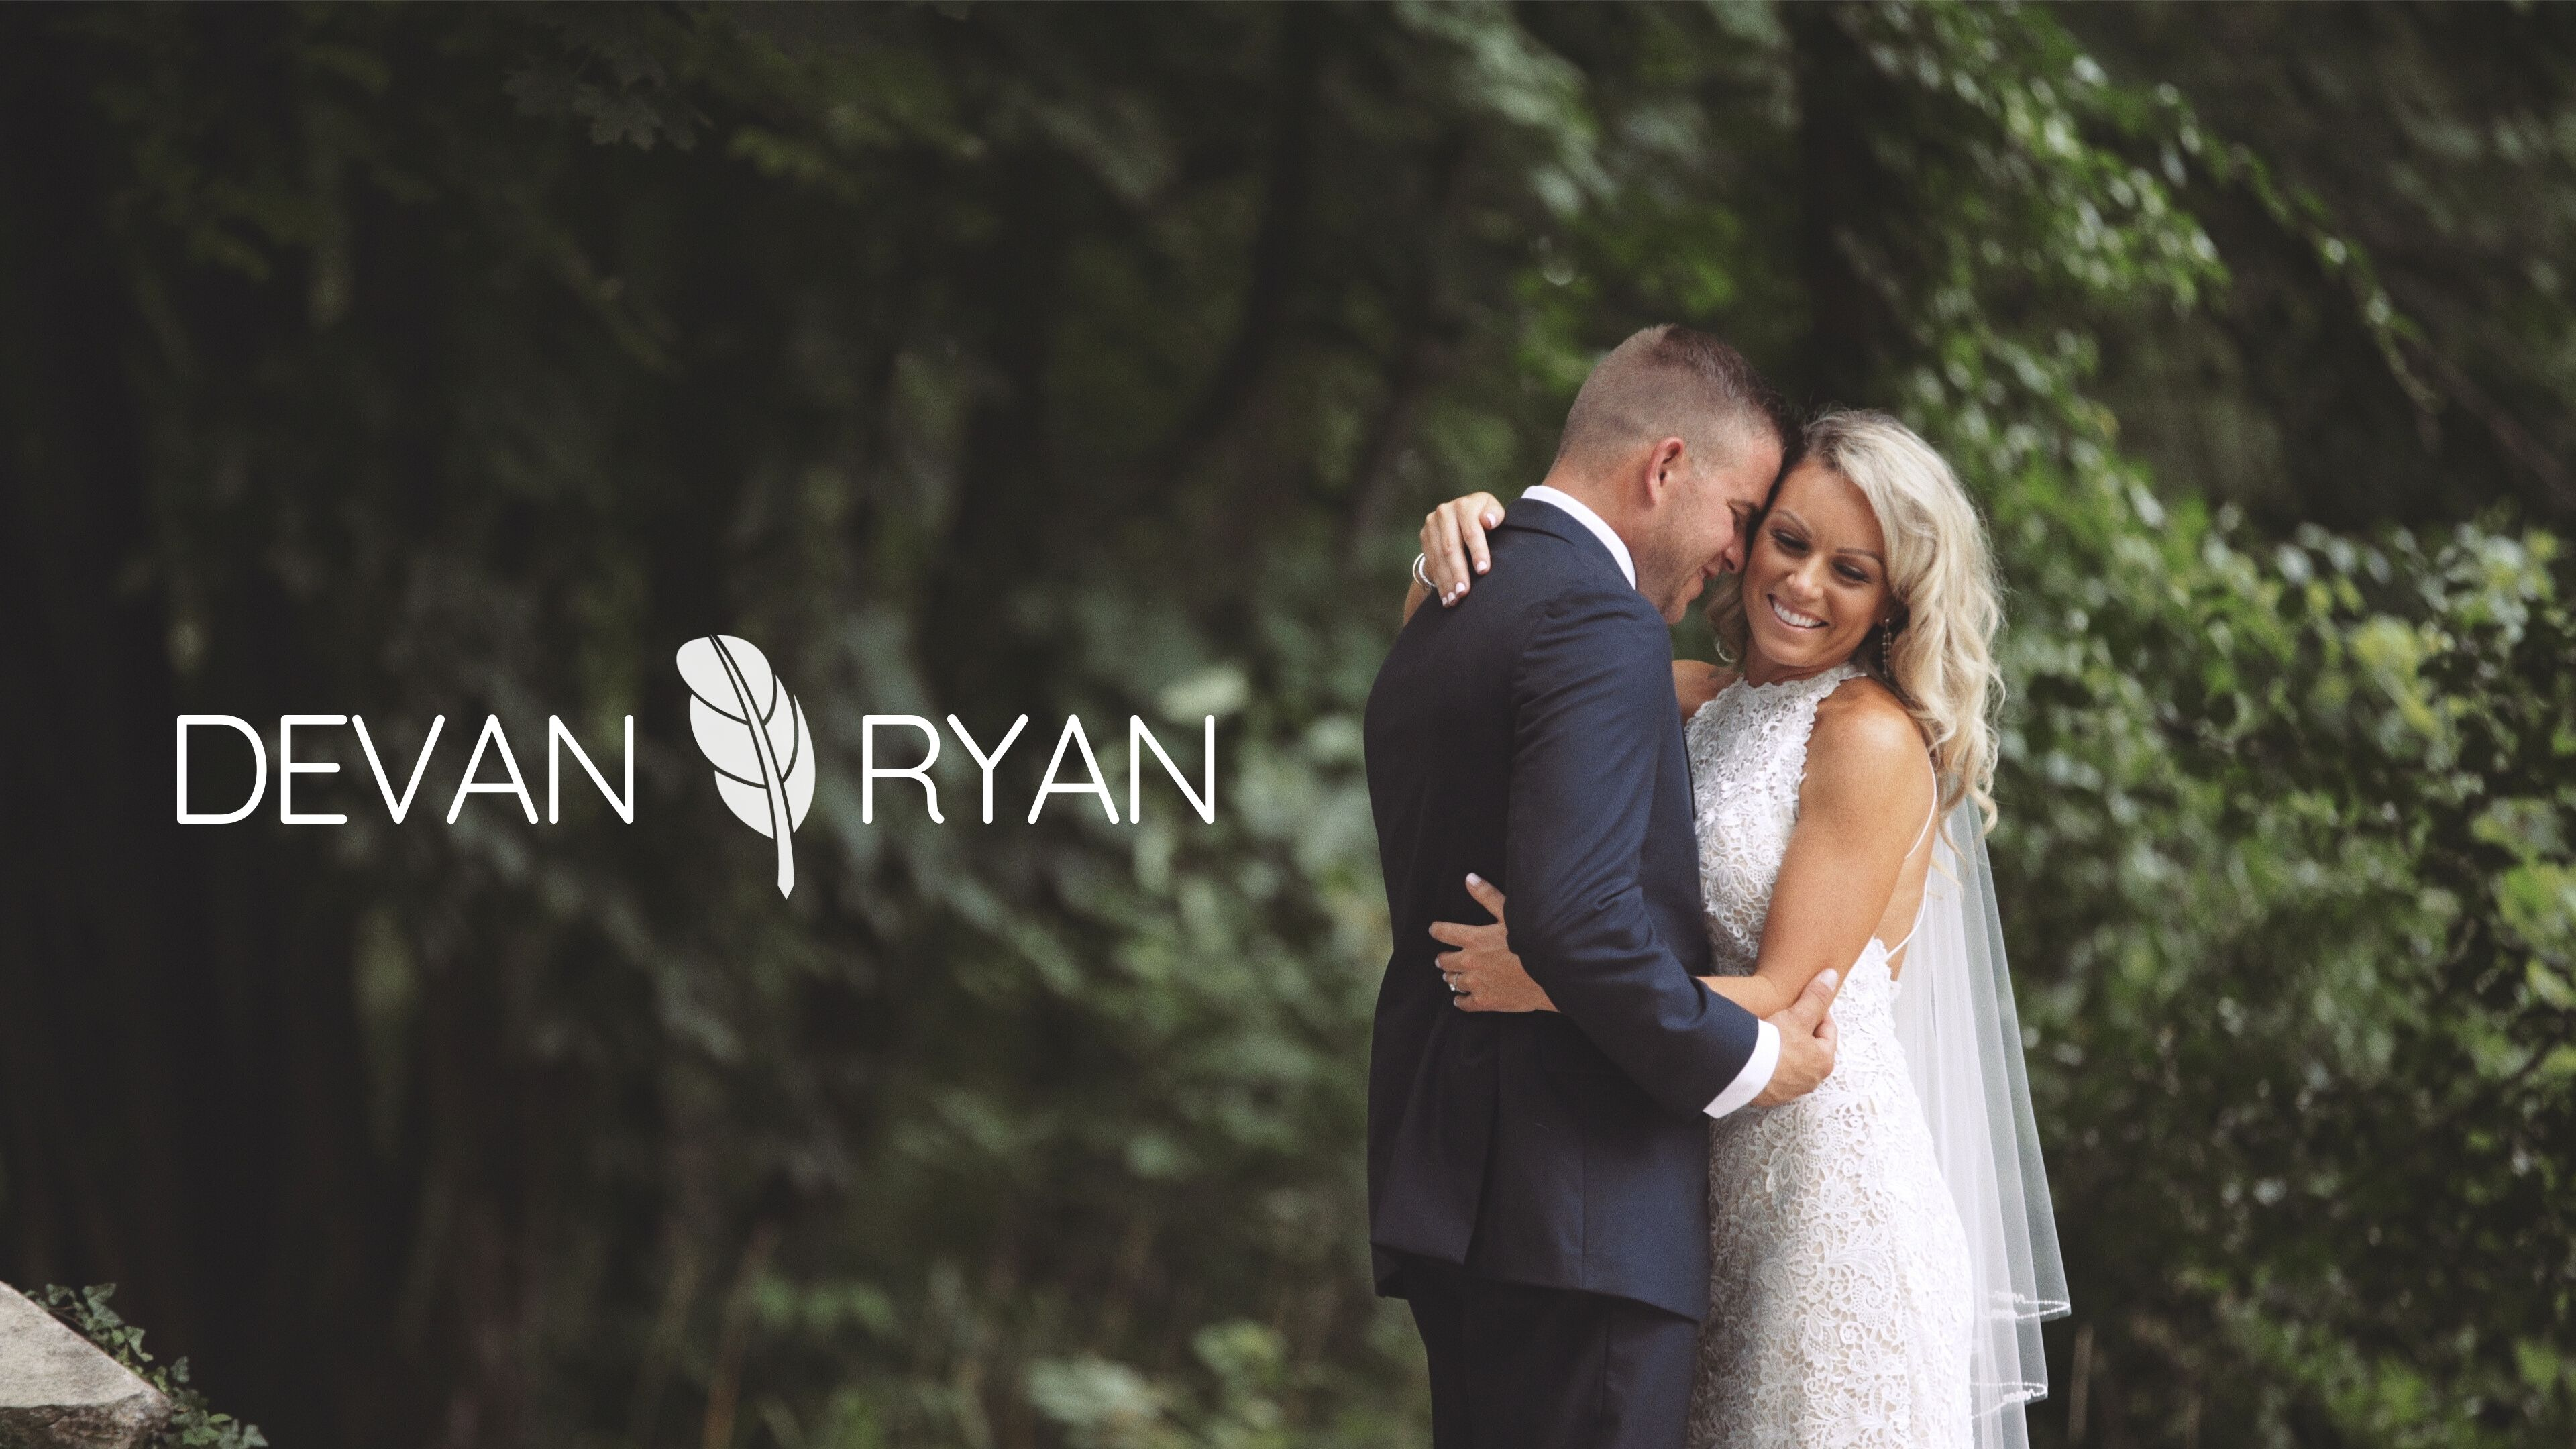 Devan + Ryan | Manchester, Pennsylvania | Historic Shady Lane